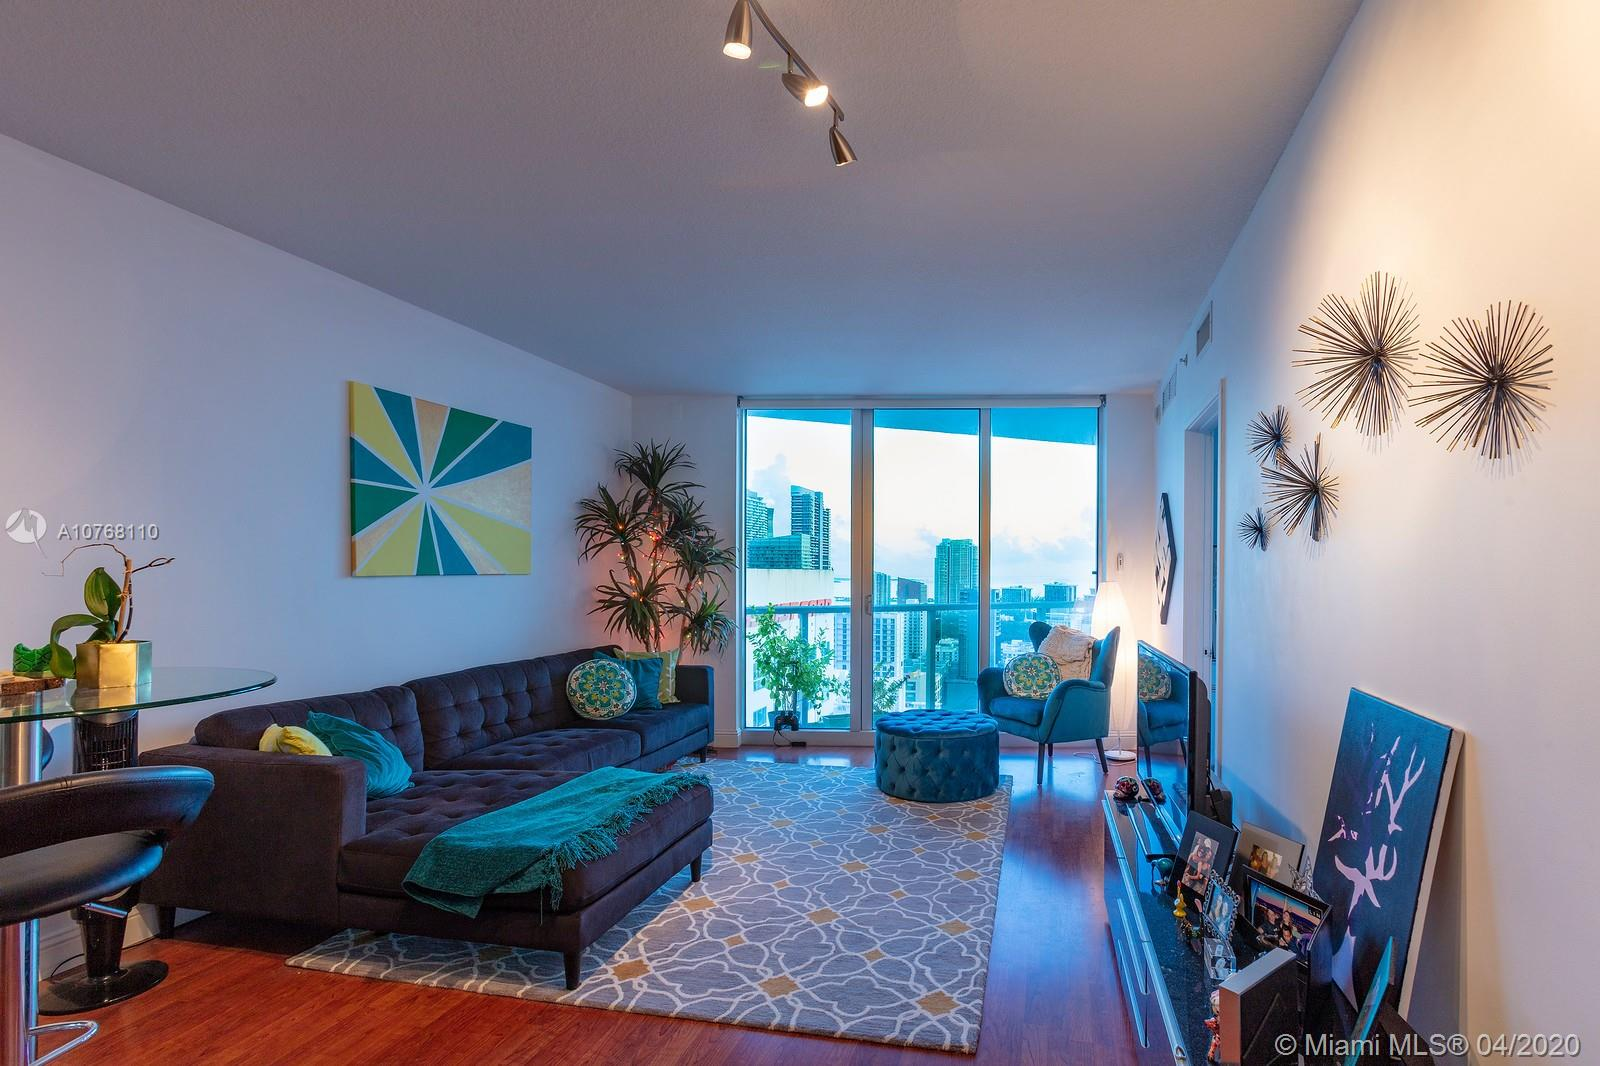 185 S W 7th St #3102 For Sale A10768110, FL